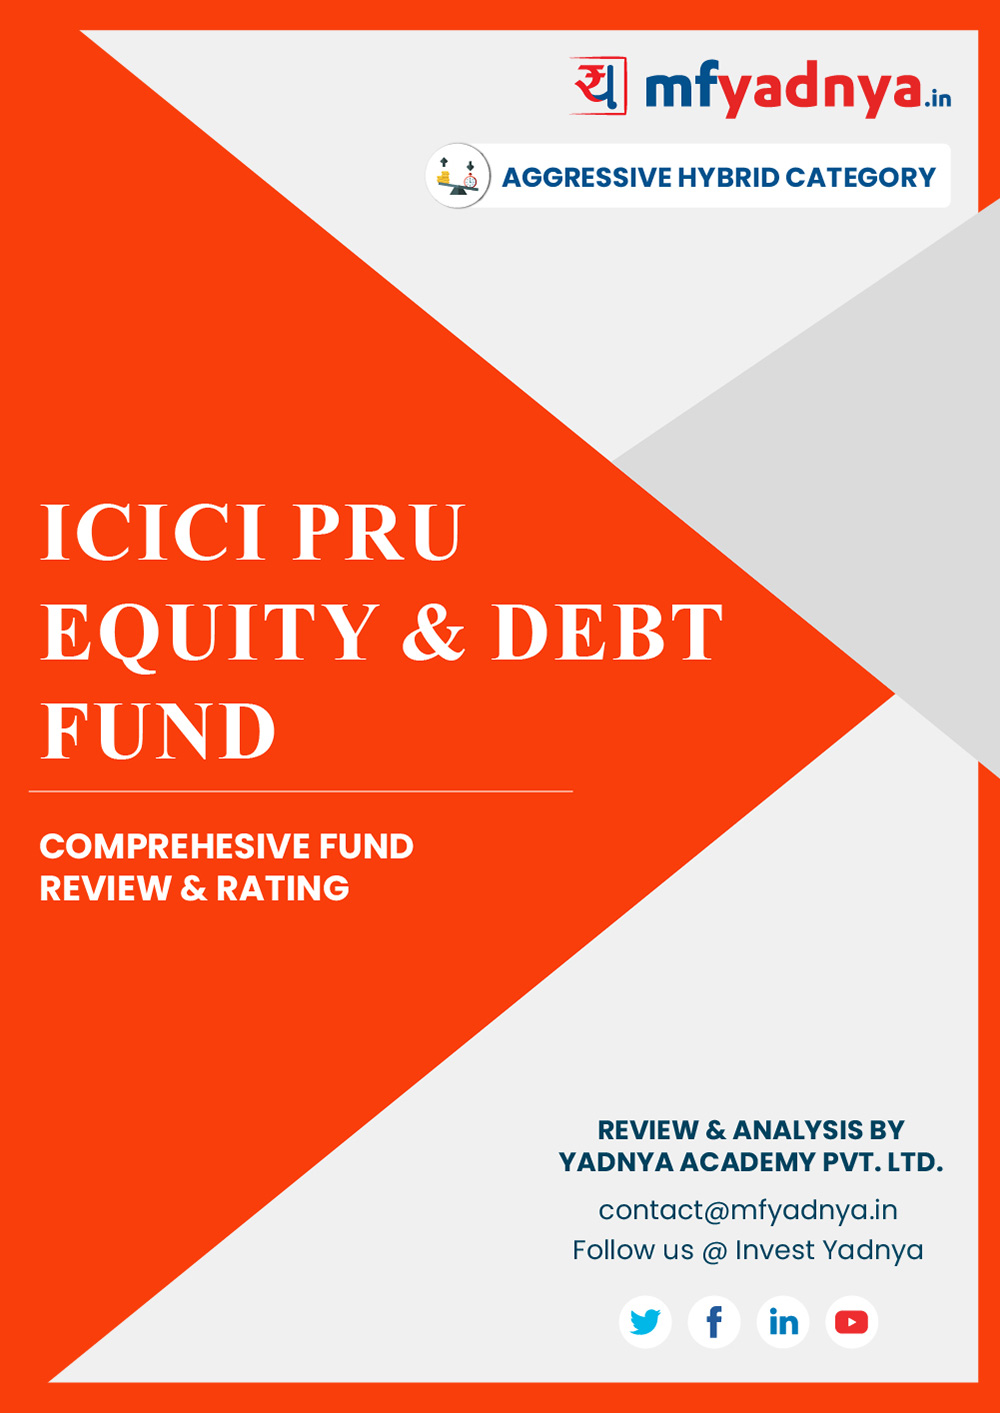 This e-book offers a comprehensive mutual fund review of ICICI PRU Equity & DEBT Fund for hybrid category. It reviews the fund's return, ratio, allocation etc. ✔ Detailed Mutual Fund Analysis ✔ Latest Research Reports